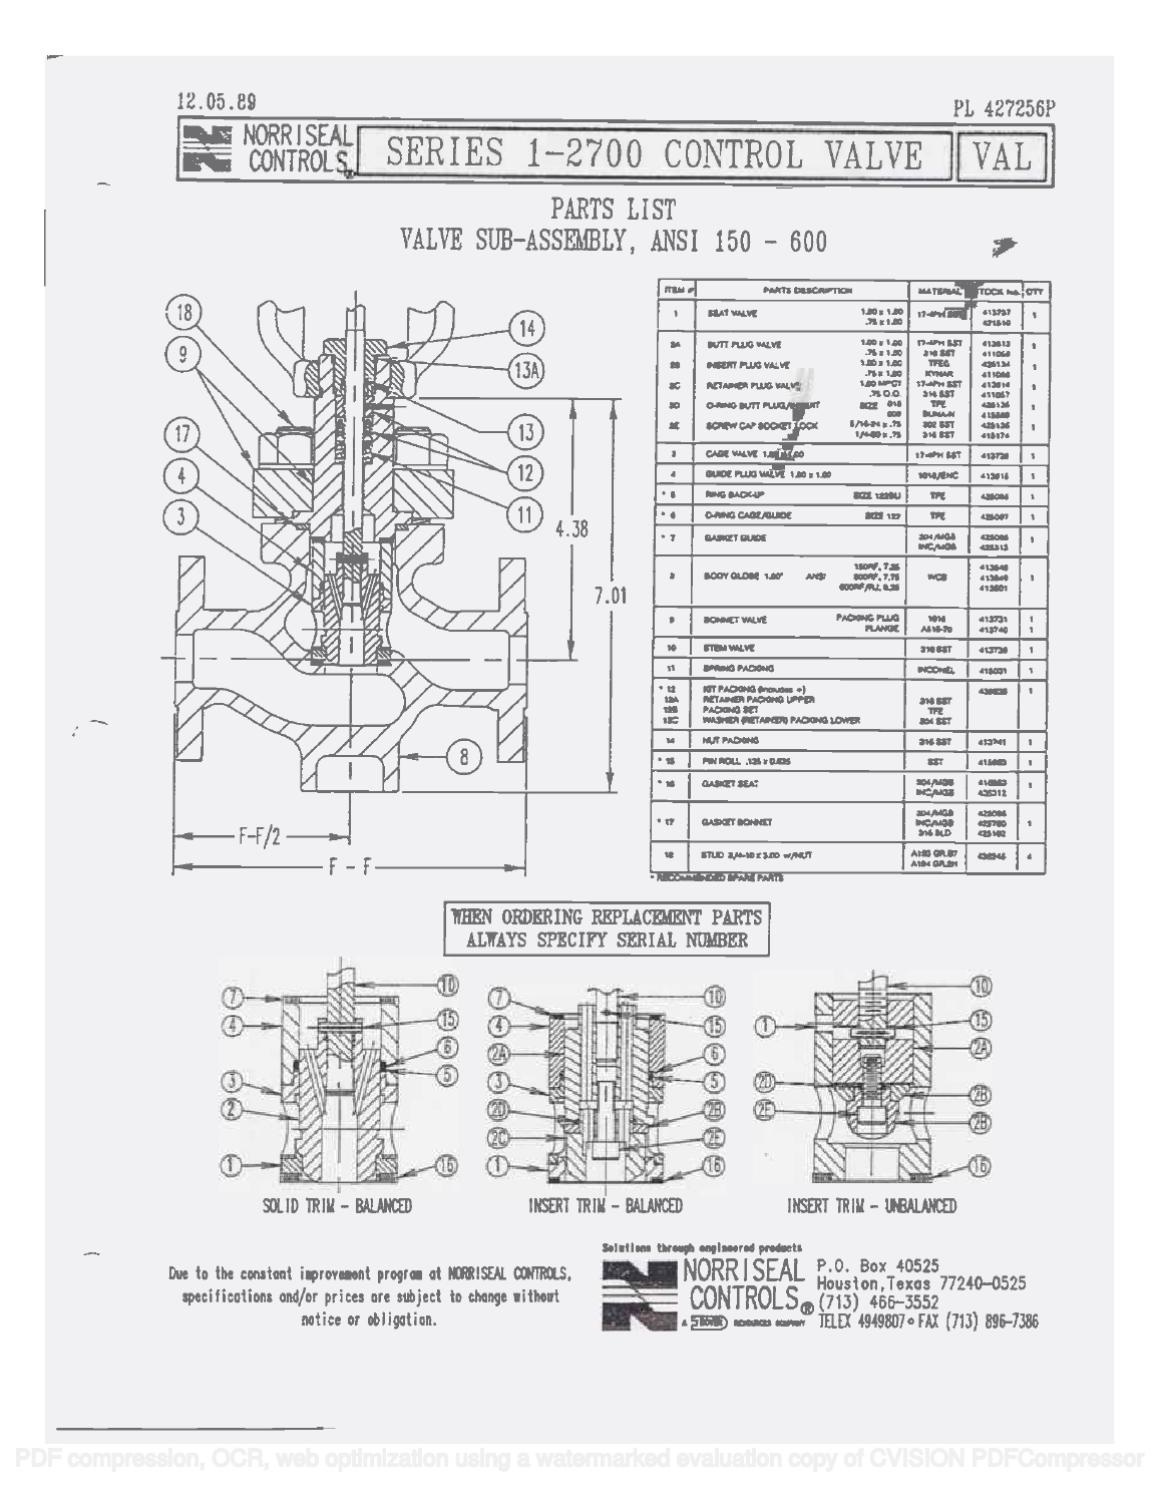 2700 parts list schematic by rmc process controls filtration 2700 parts list schematic by rmc process controls filtration inc issuu pooptronica